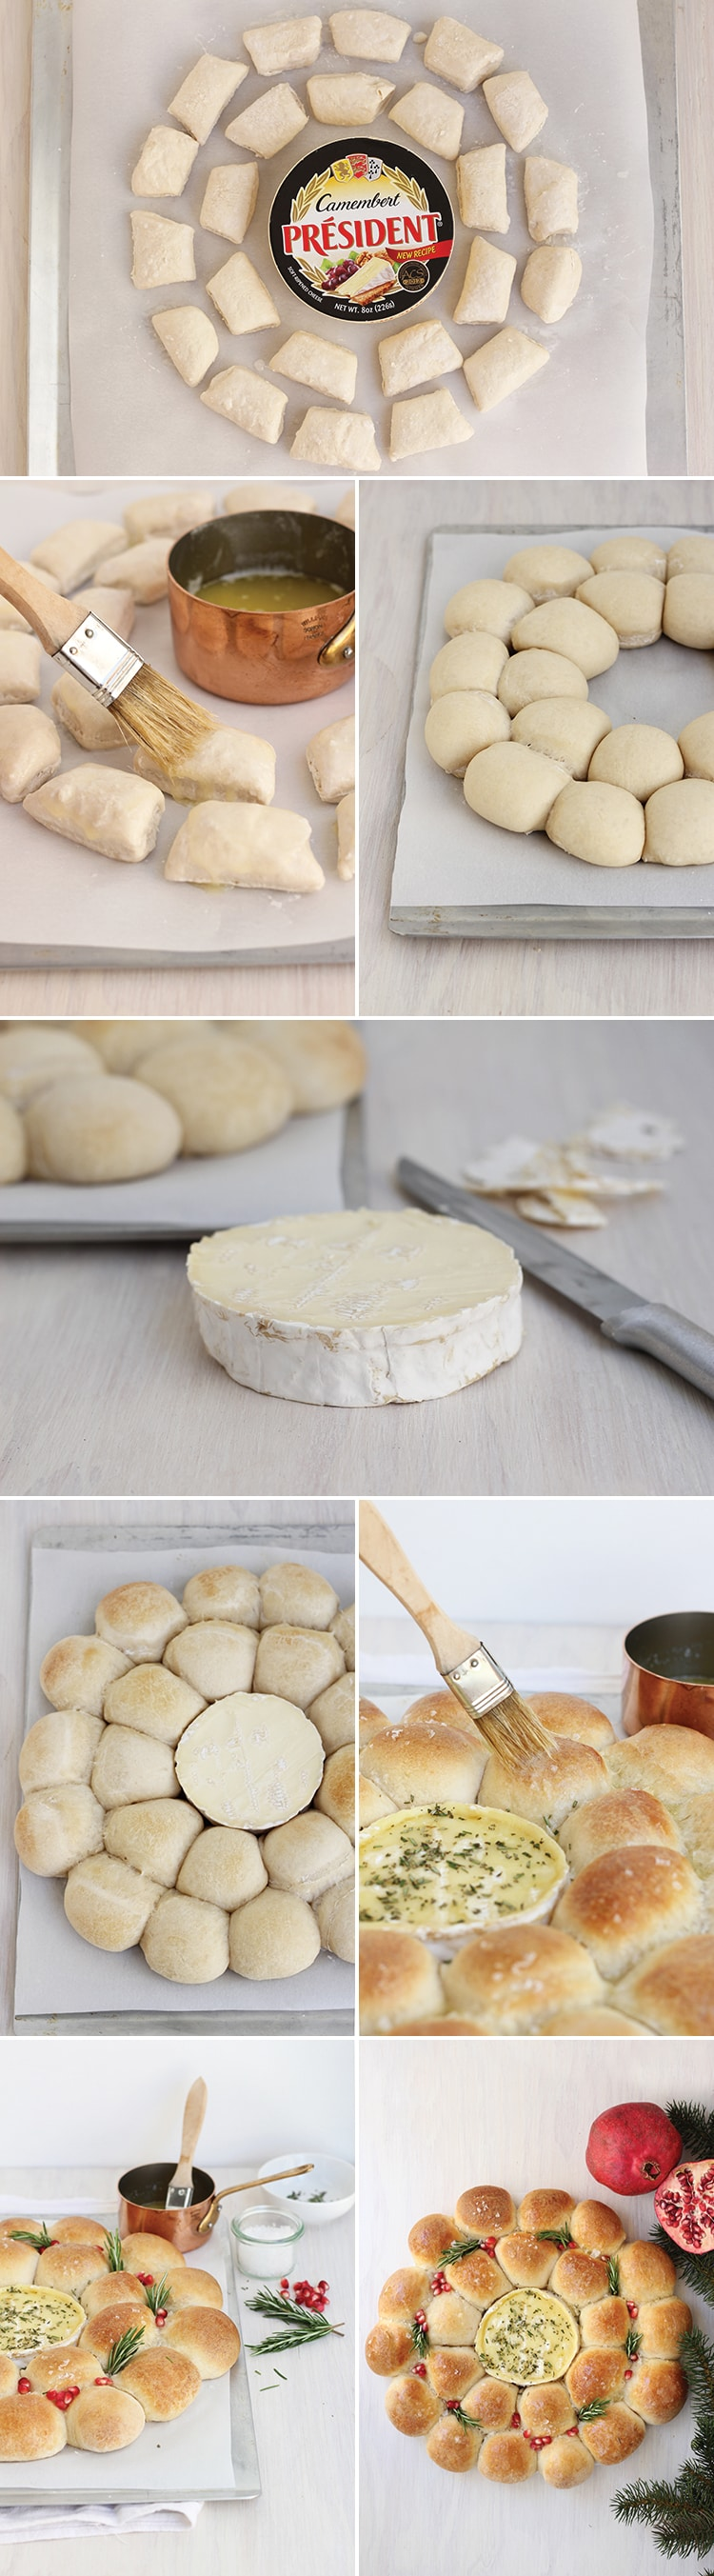 Baked Camembert Bread Wreath